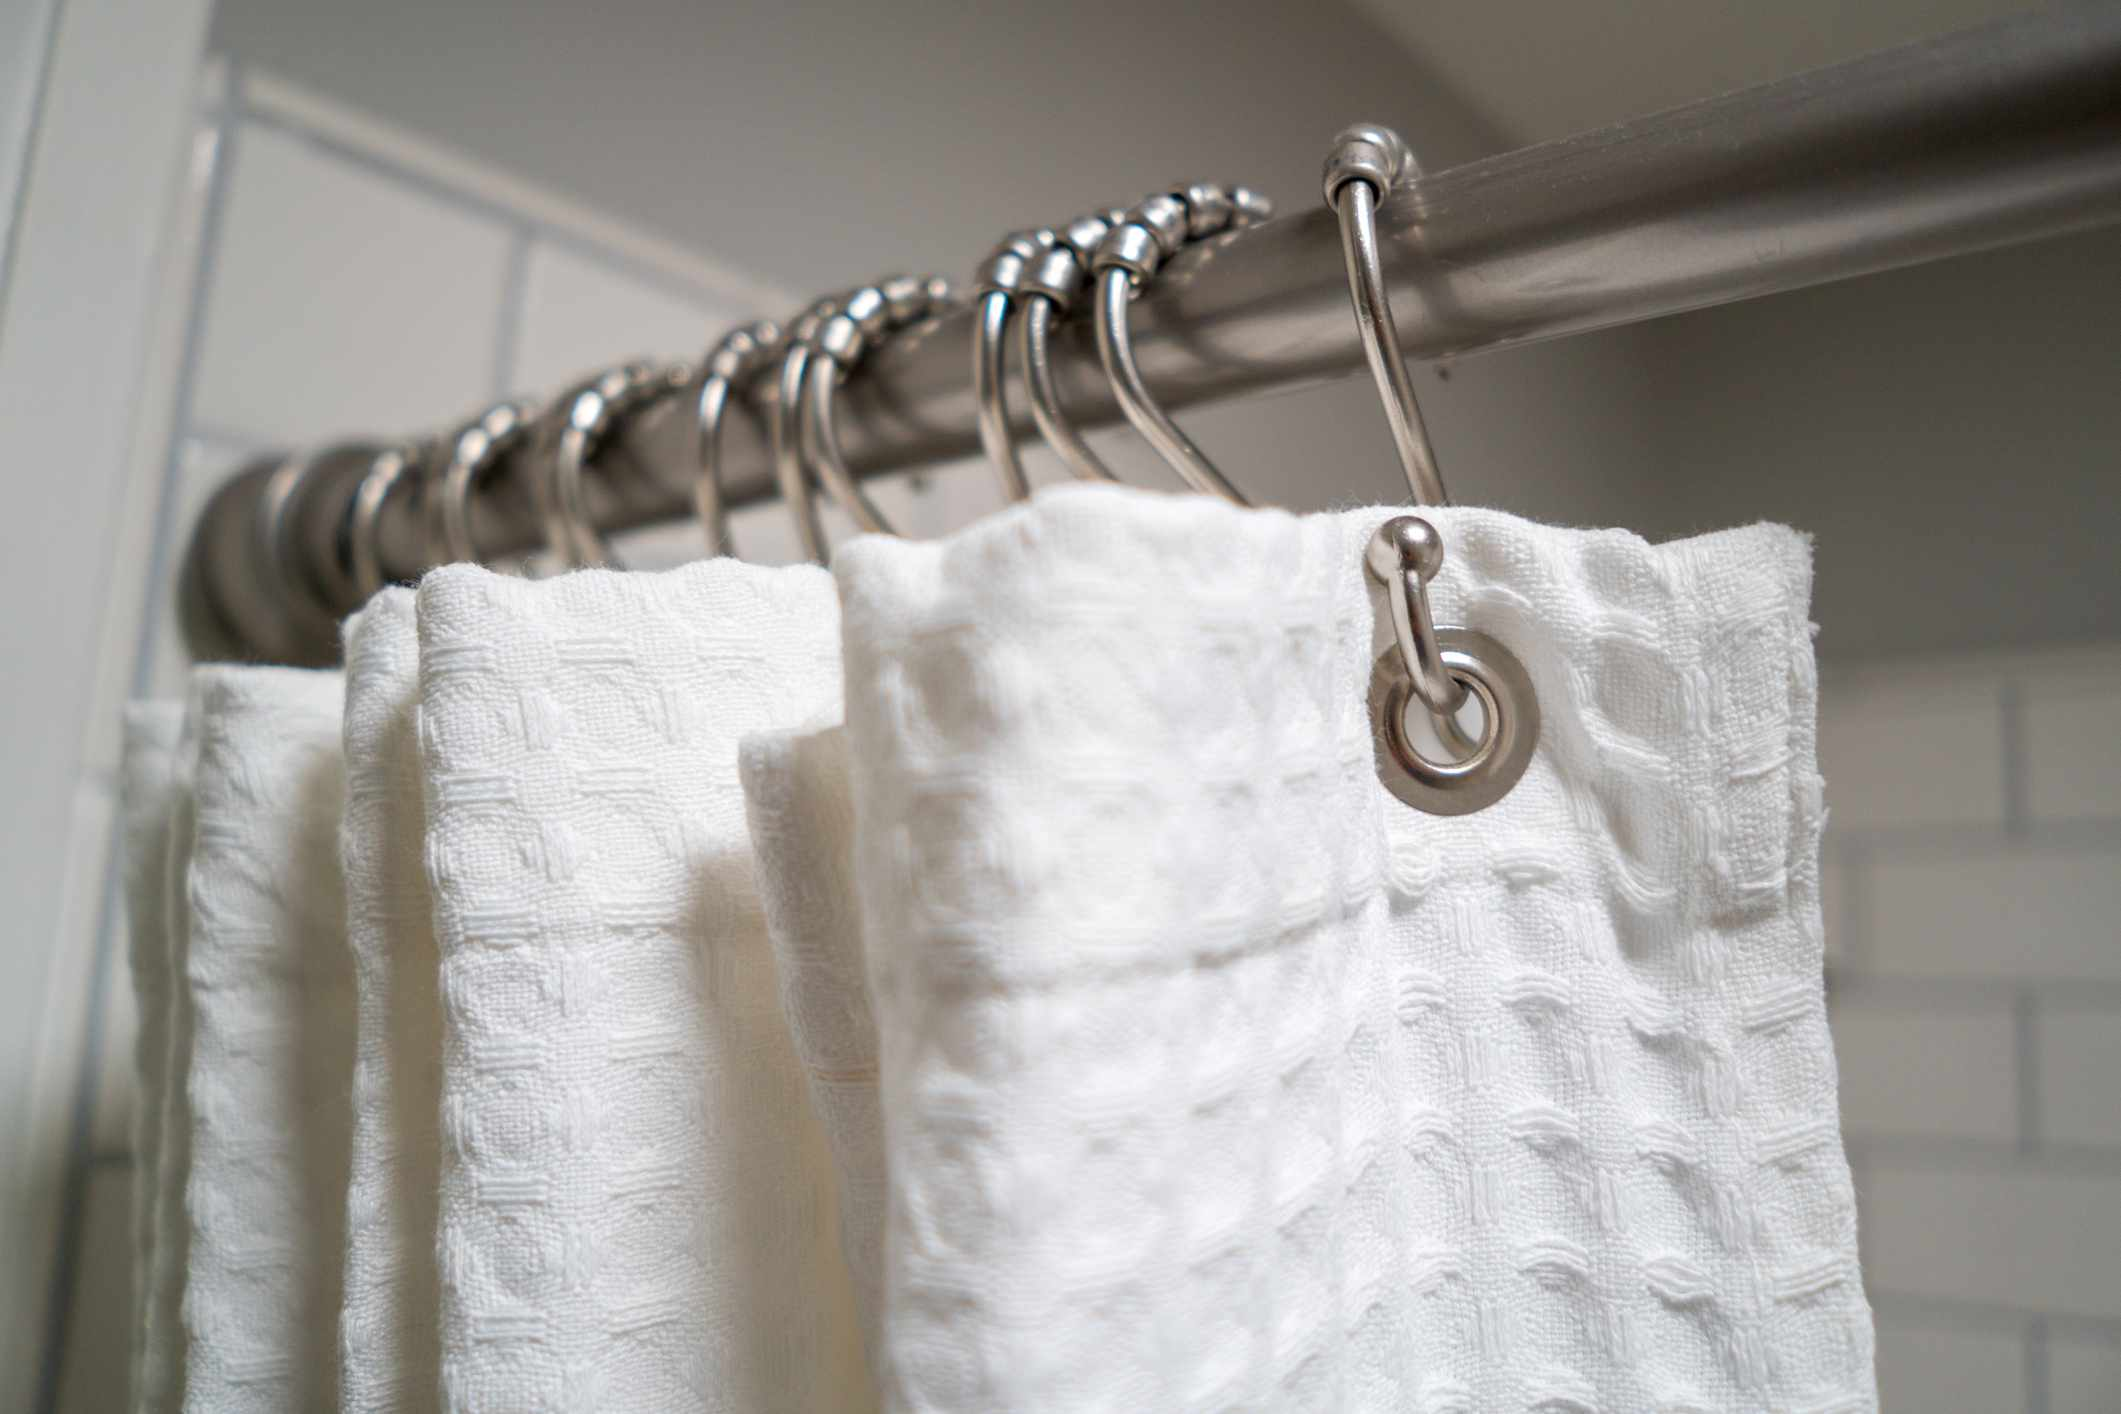 White cotton curtain hanging in a shower.